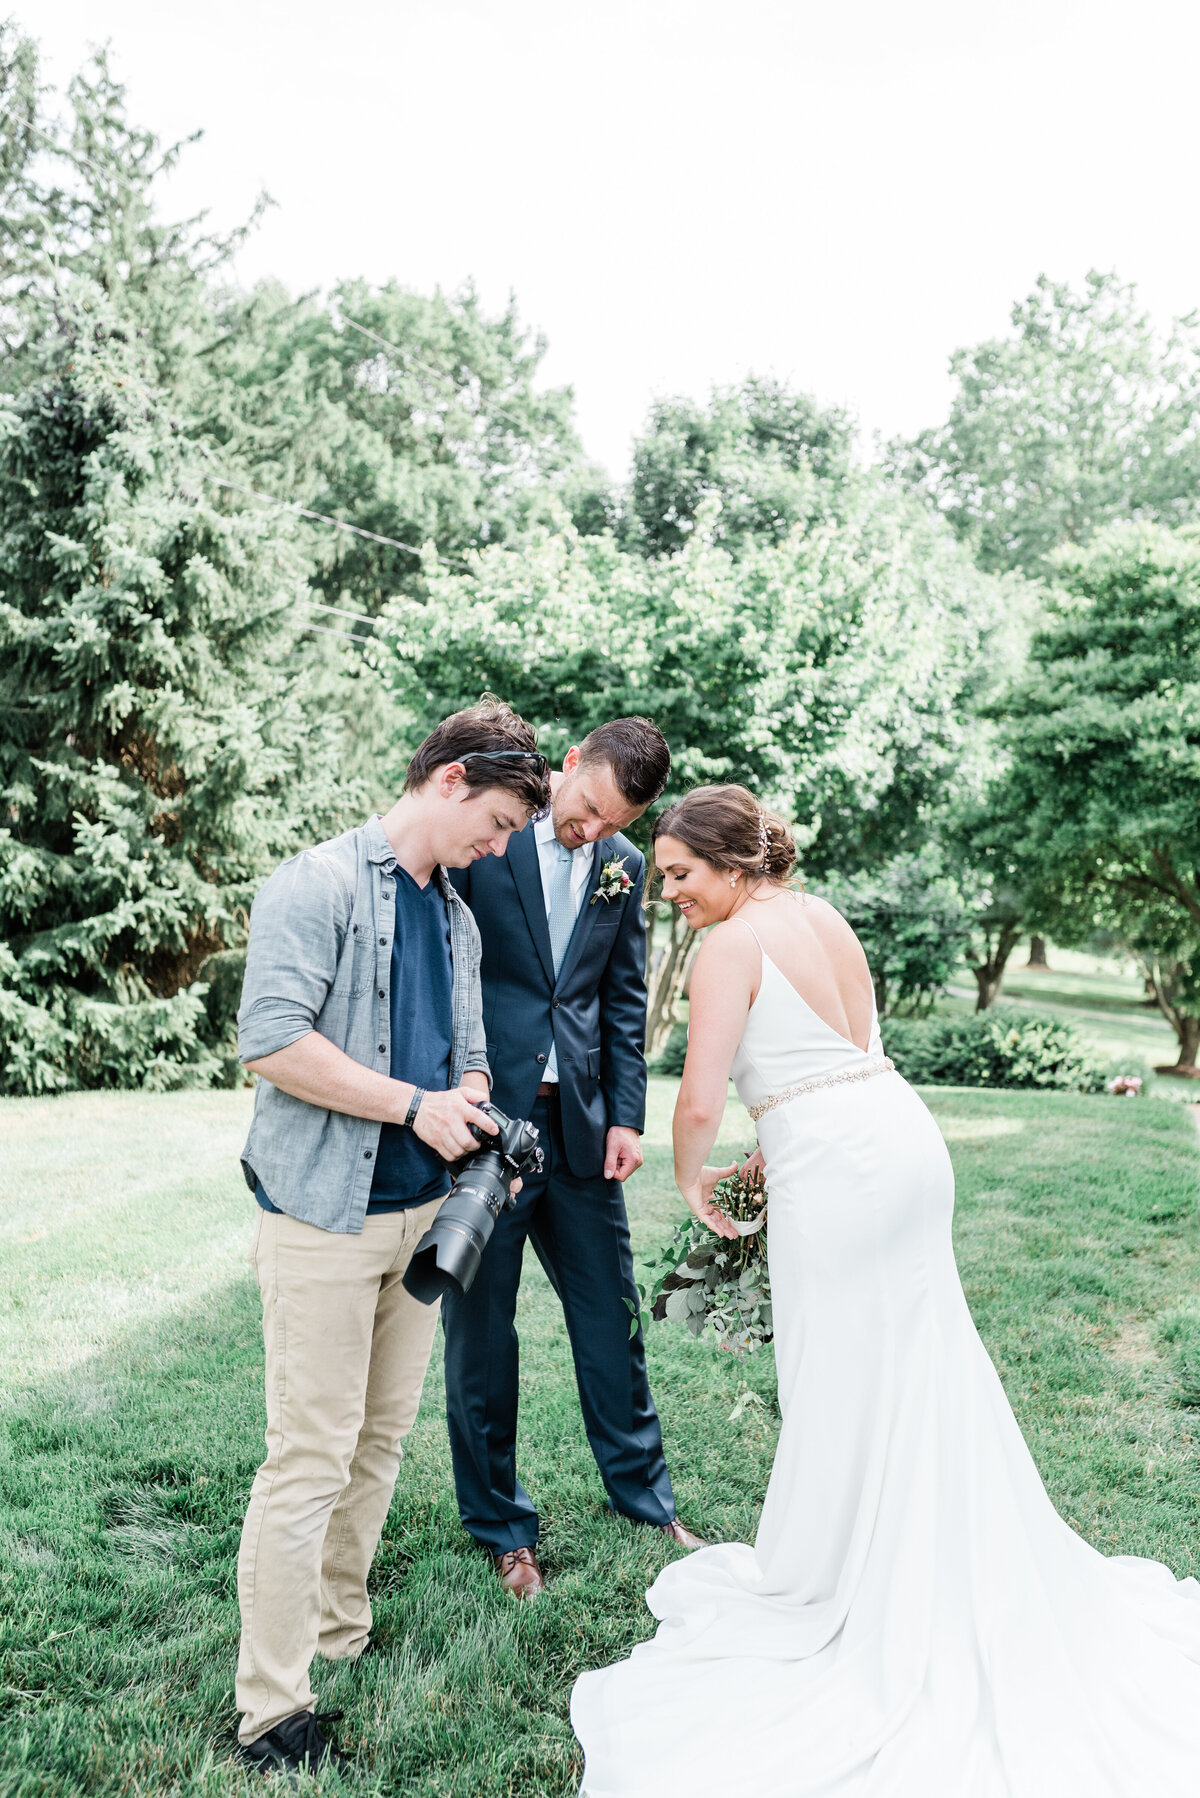 LIZ+MATT-MICROWEDDING-283